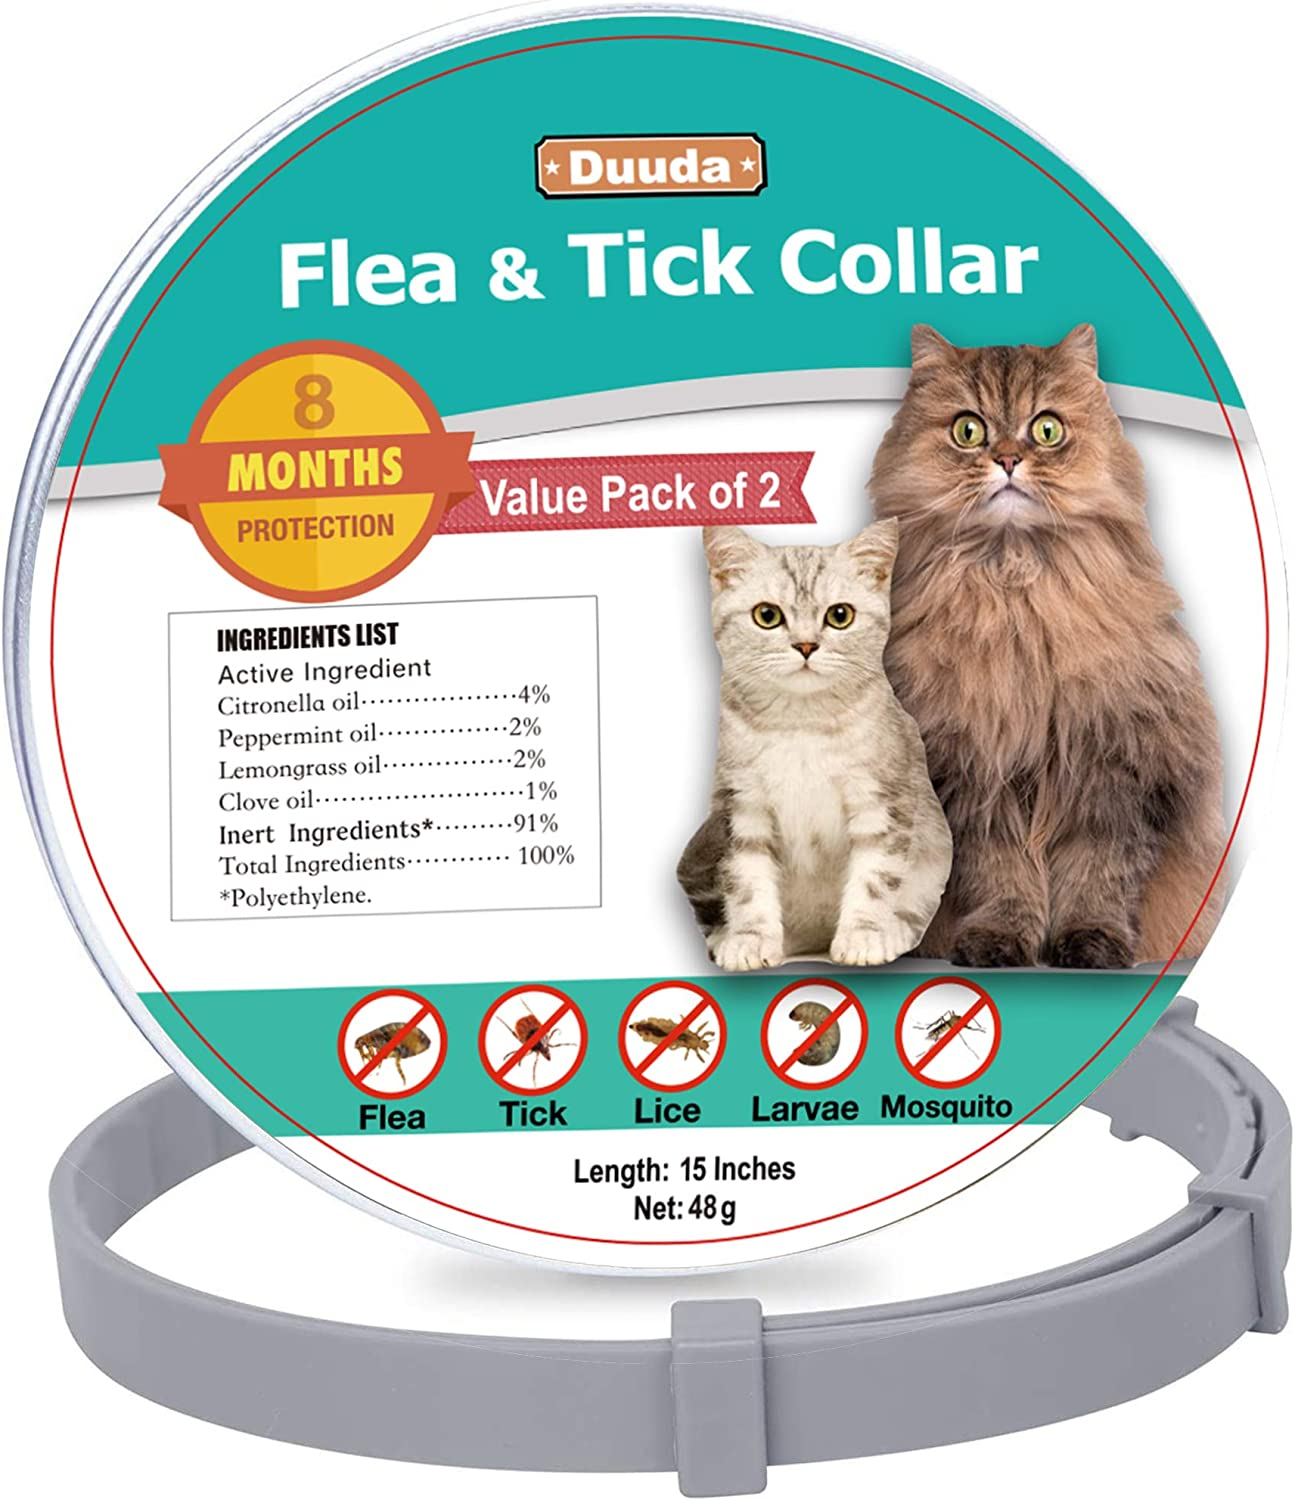 Duuda Flea and Tick Collar for Cats Waterproof and 100/% Natural Essential Oil Extract 8 Months Continuous Protection and Prevention